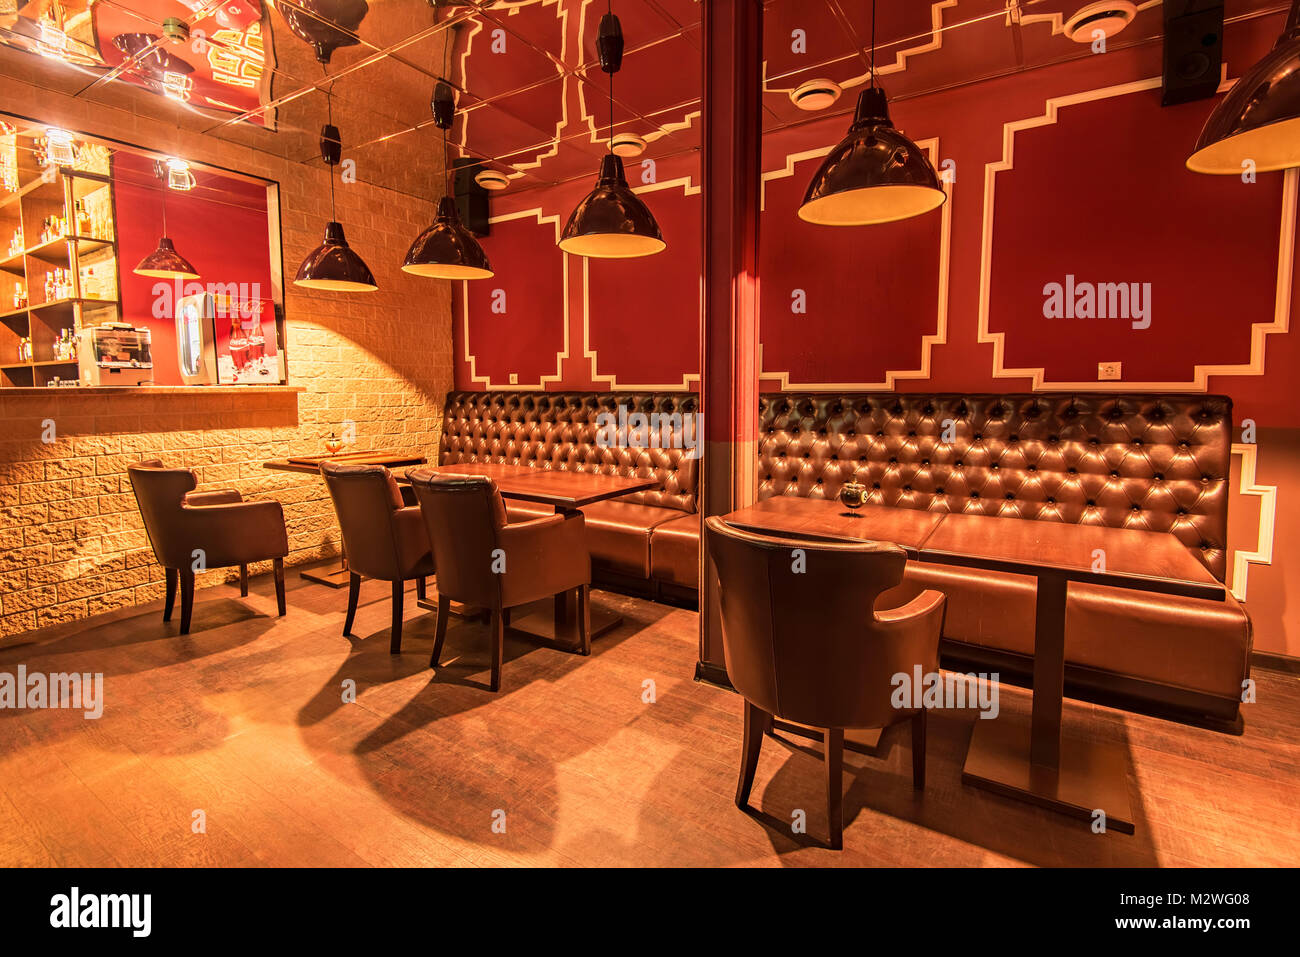 ROSTOV-ON-DON, RUSSIA - FEBRUARY 2, 2018: Bar section in billiard hall - Stock Image